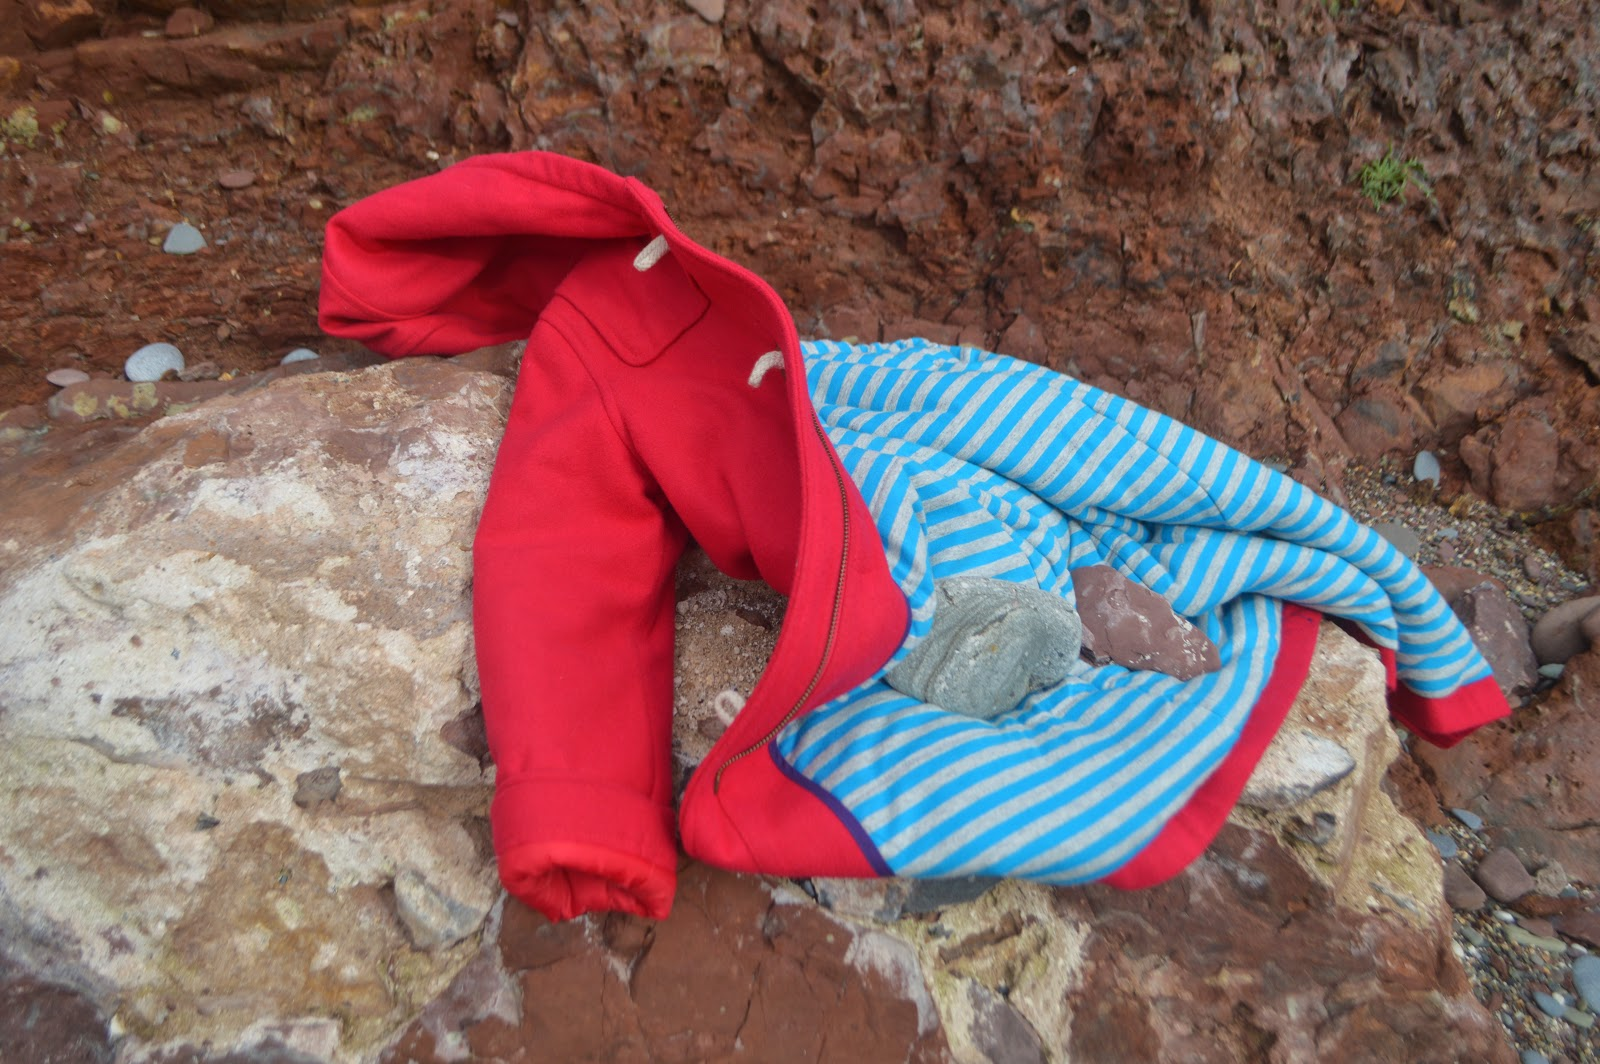 Red Boden Coat on Rocks at Manorbier Beach, Pembrokeshire, Wales